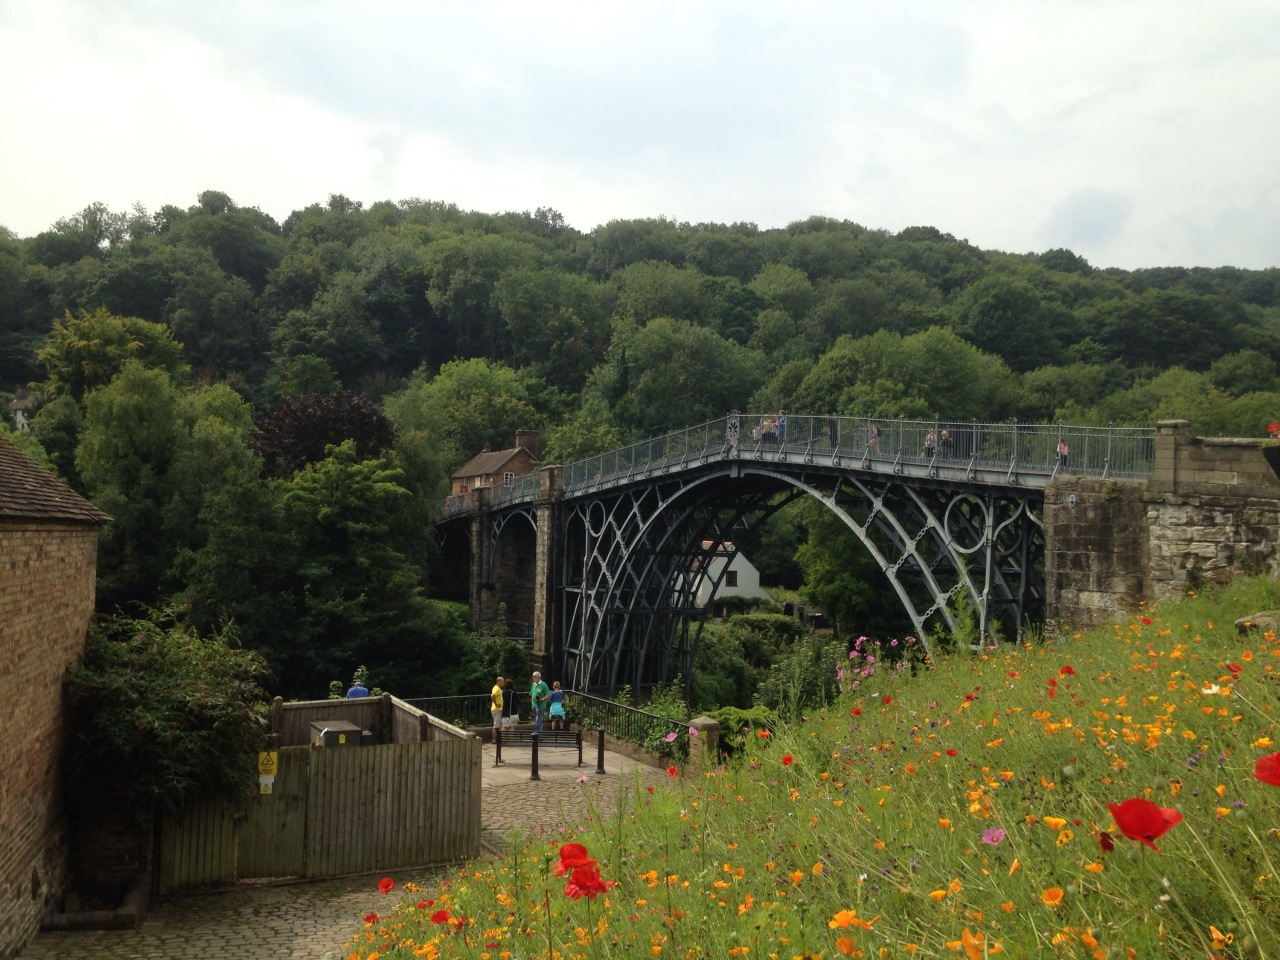 Ironbridge: a bit of culture in the Midlands